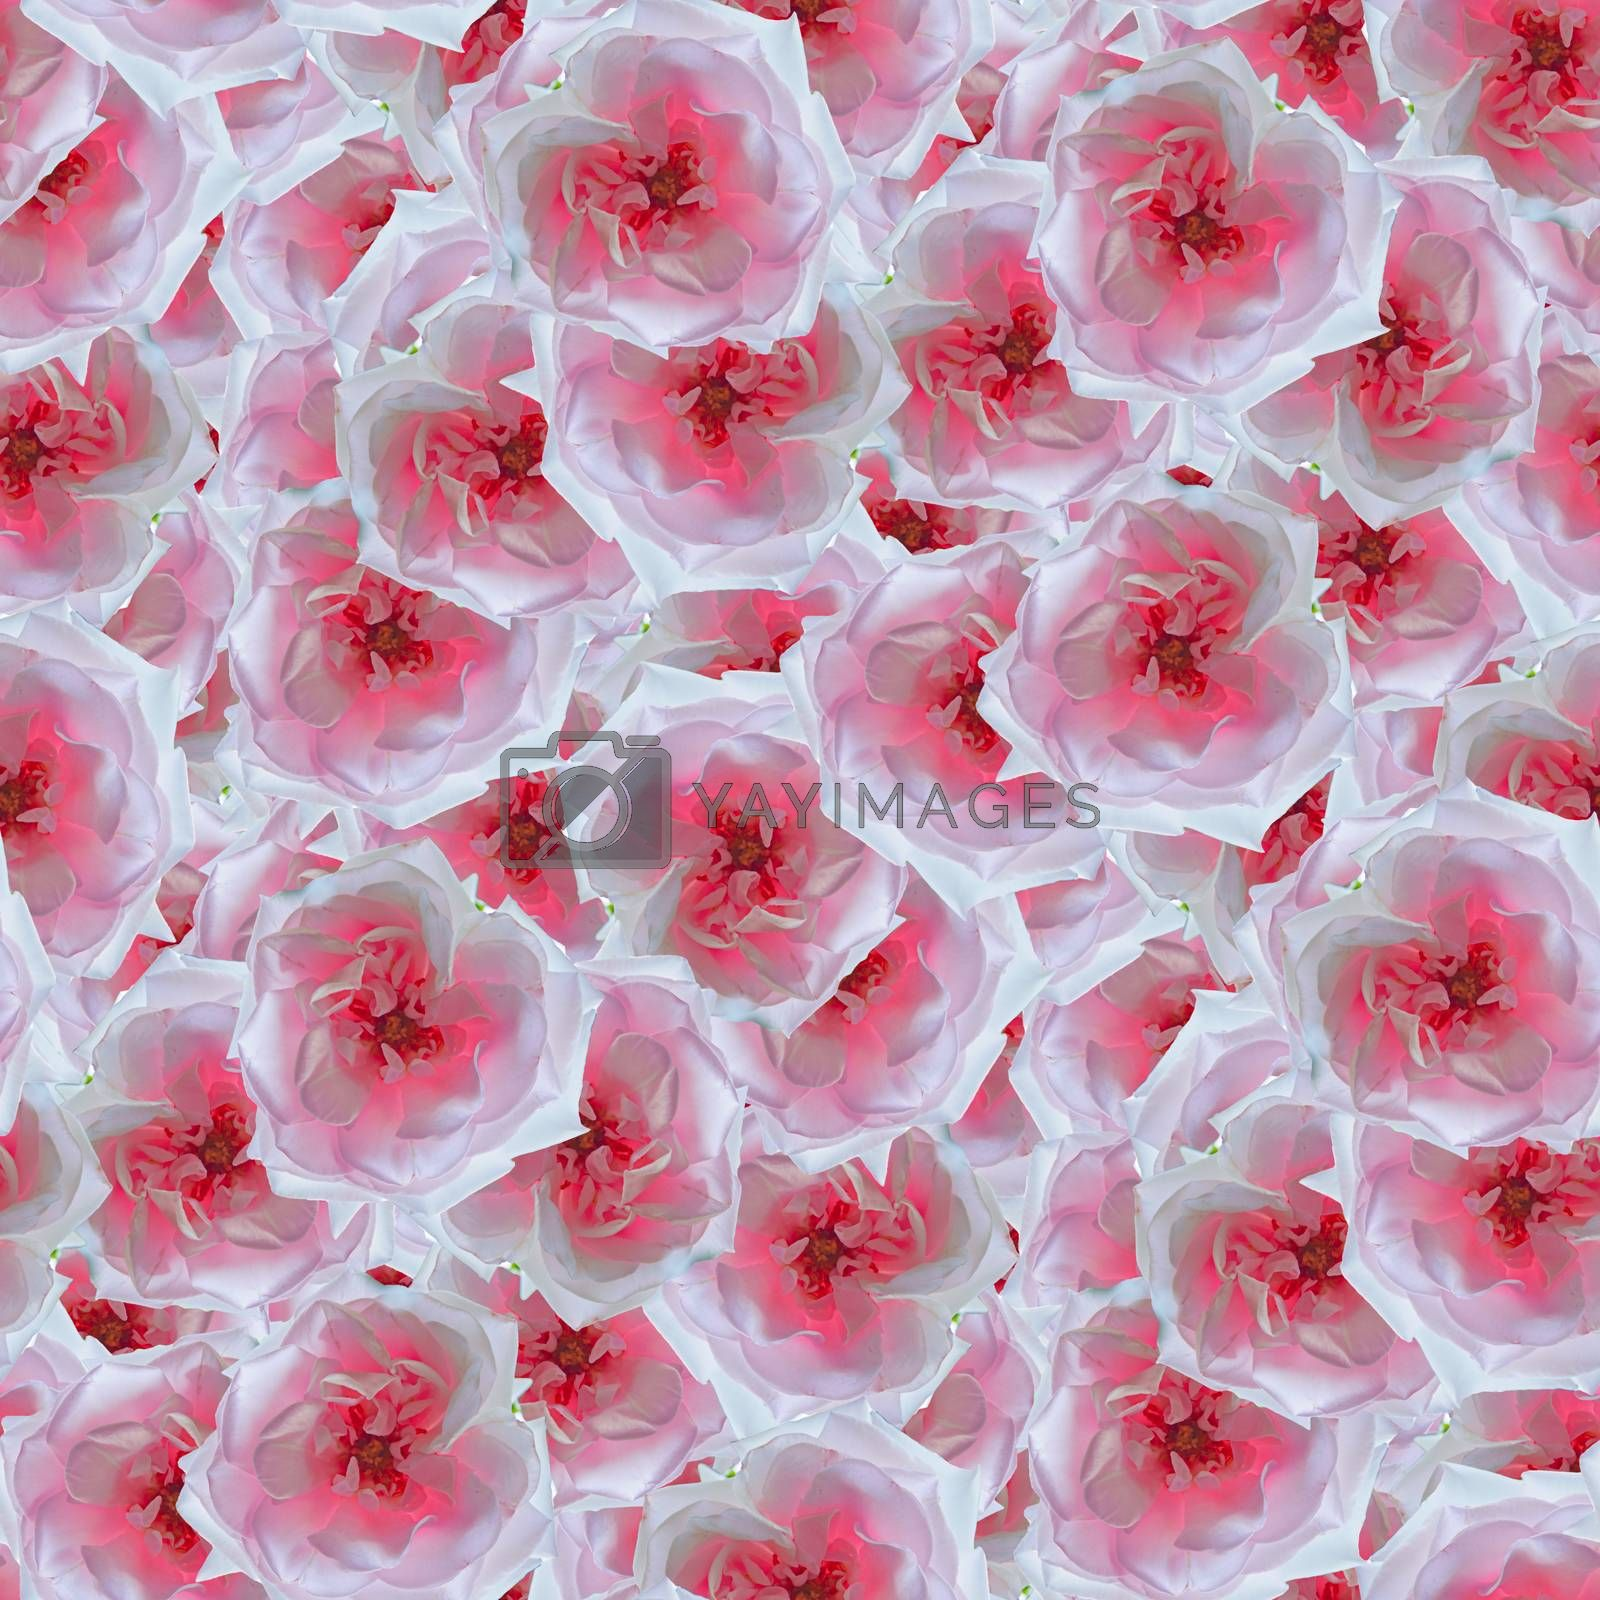 texture of a seamless flower pattern, decorative design elements